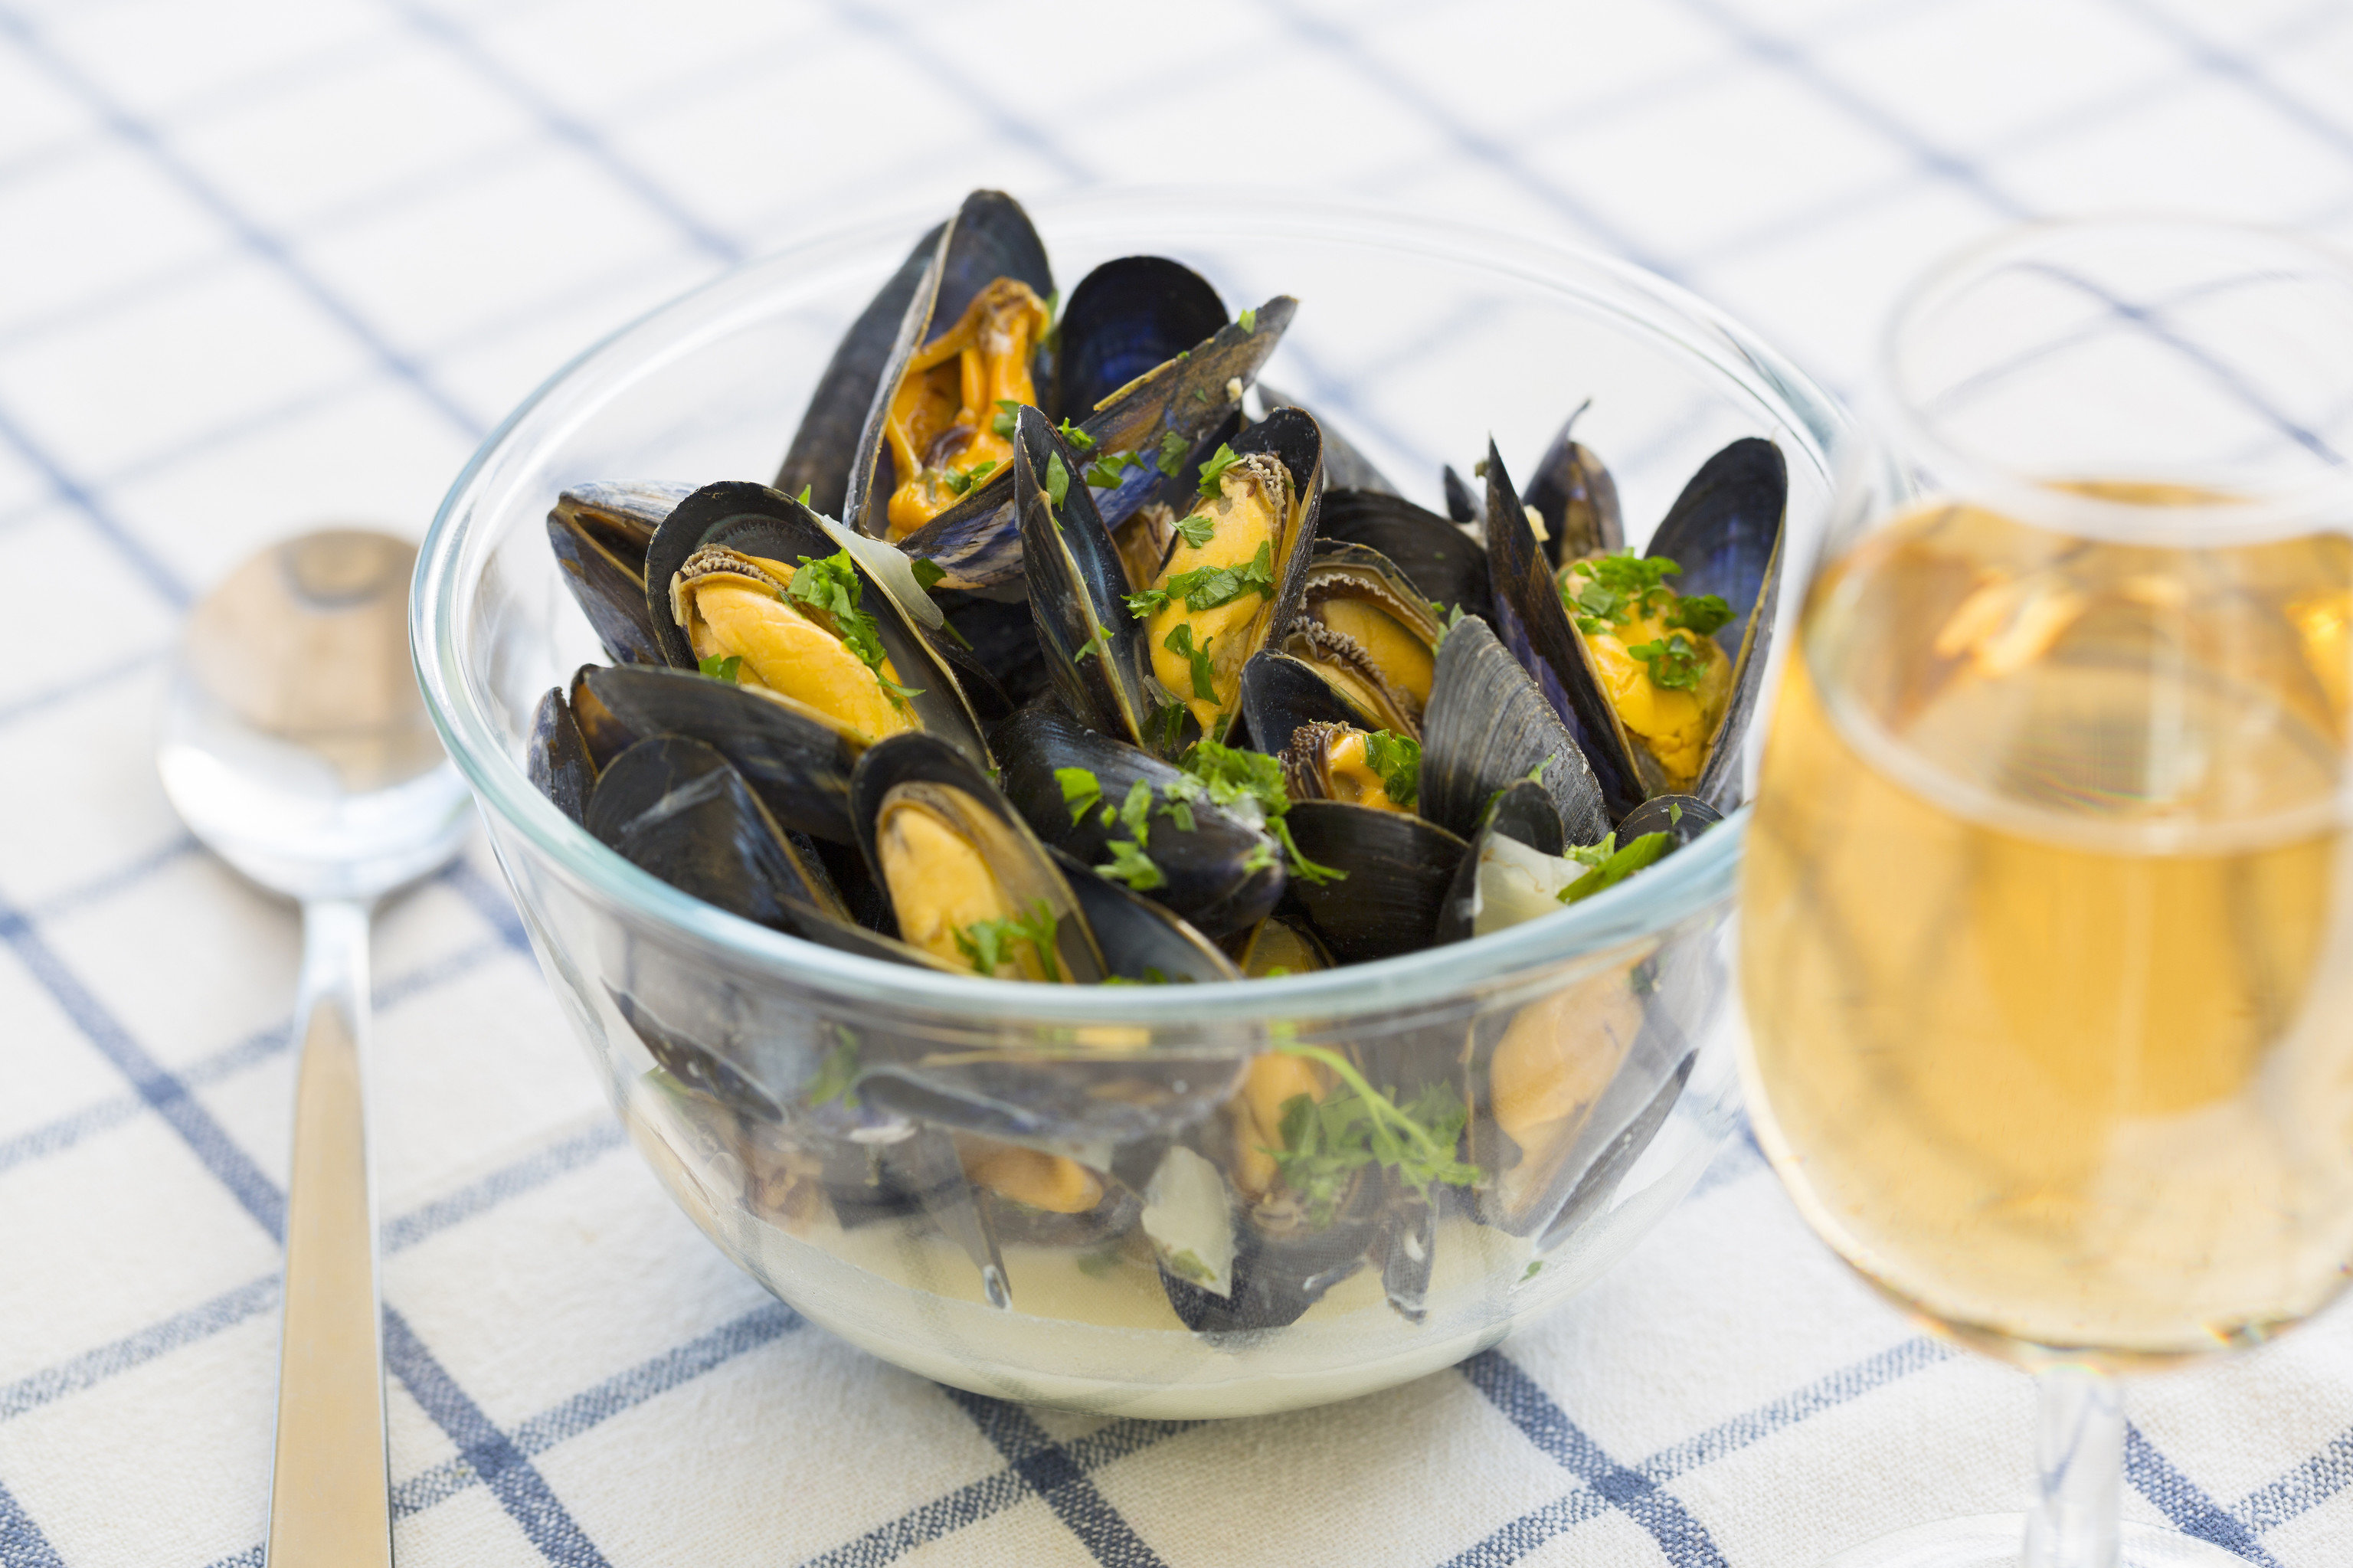 Trip Ideas cup food mussel Seafood produce invertebrate clams oysters mussels and scallops dish vegetable